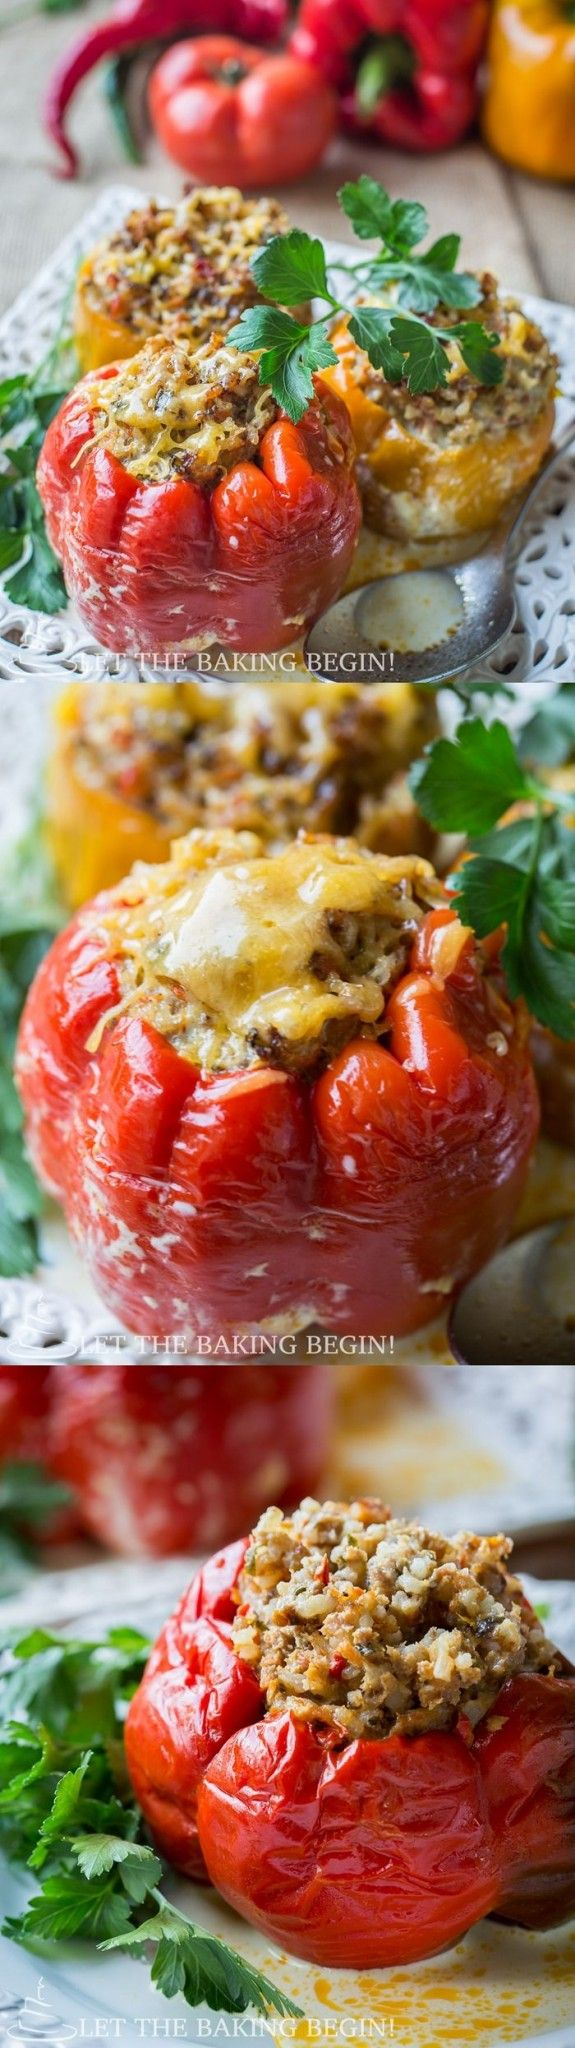 102 best images about romanian food recipes on pinterest - Best romanian pepper cultivars ...